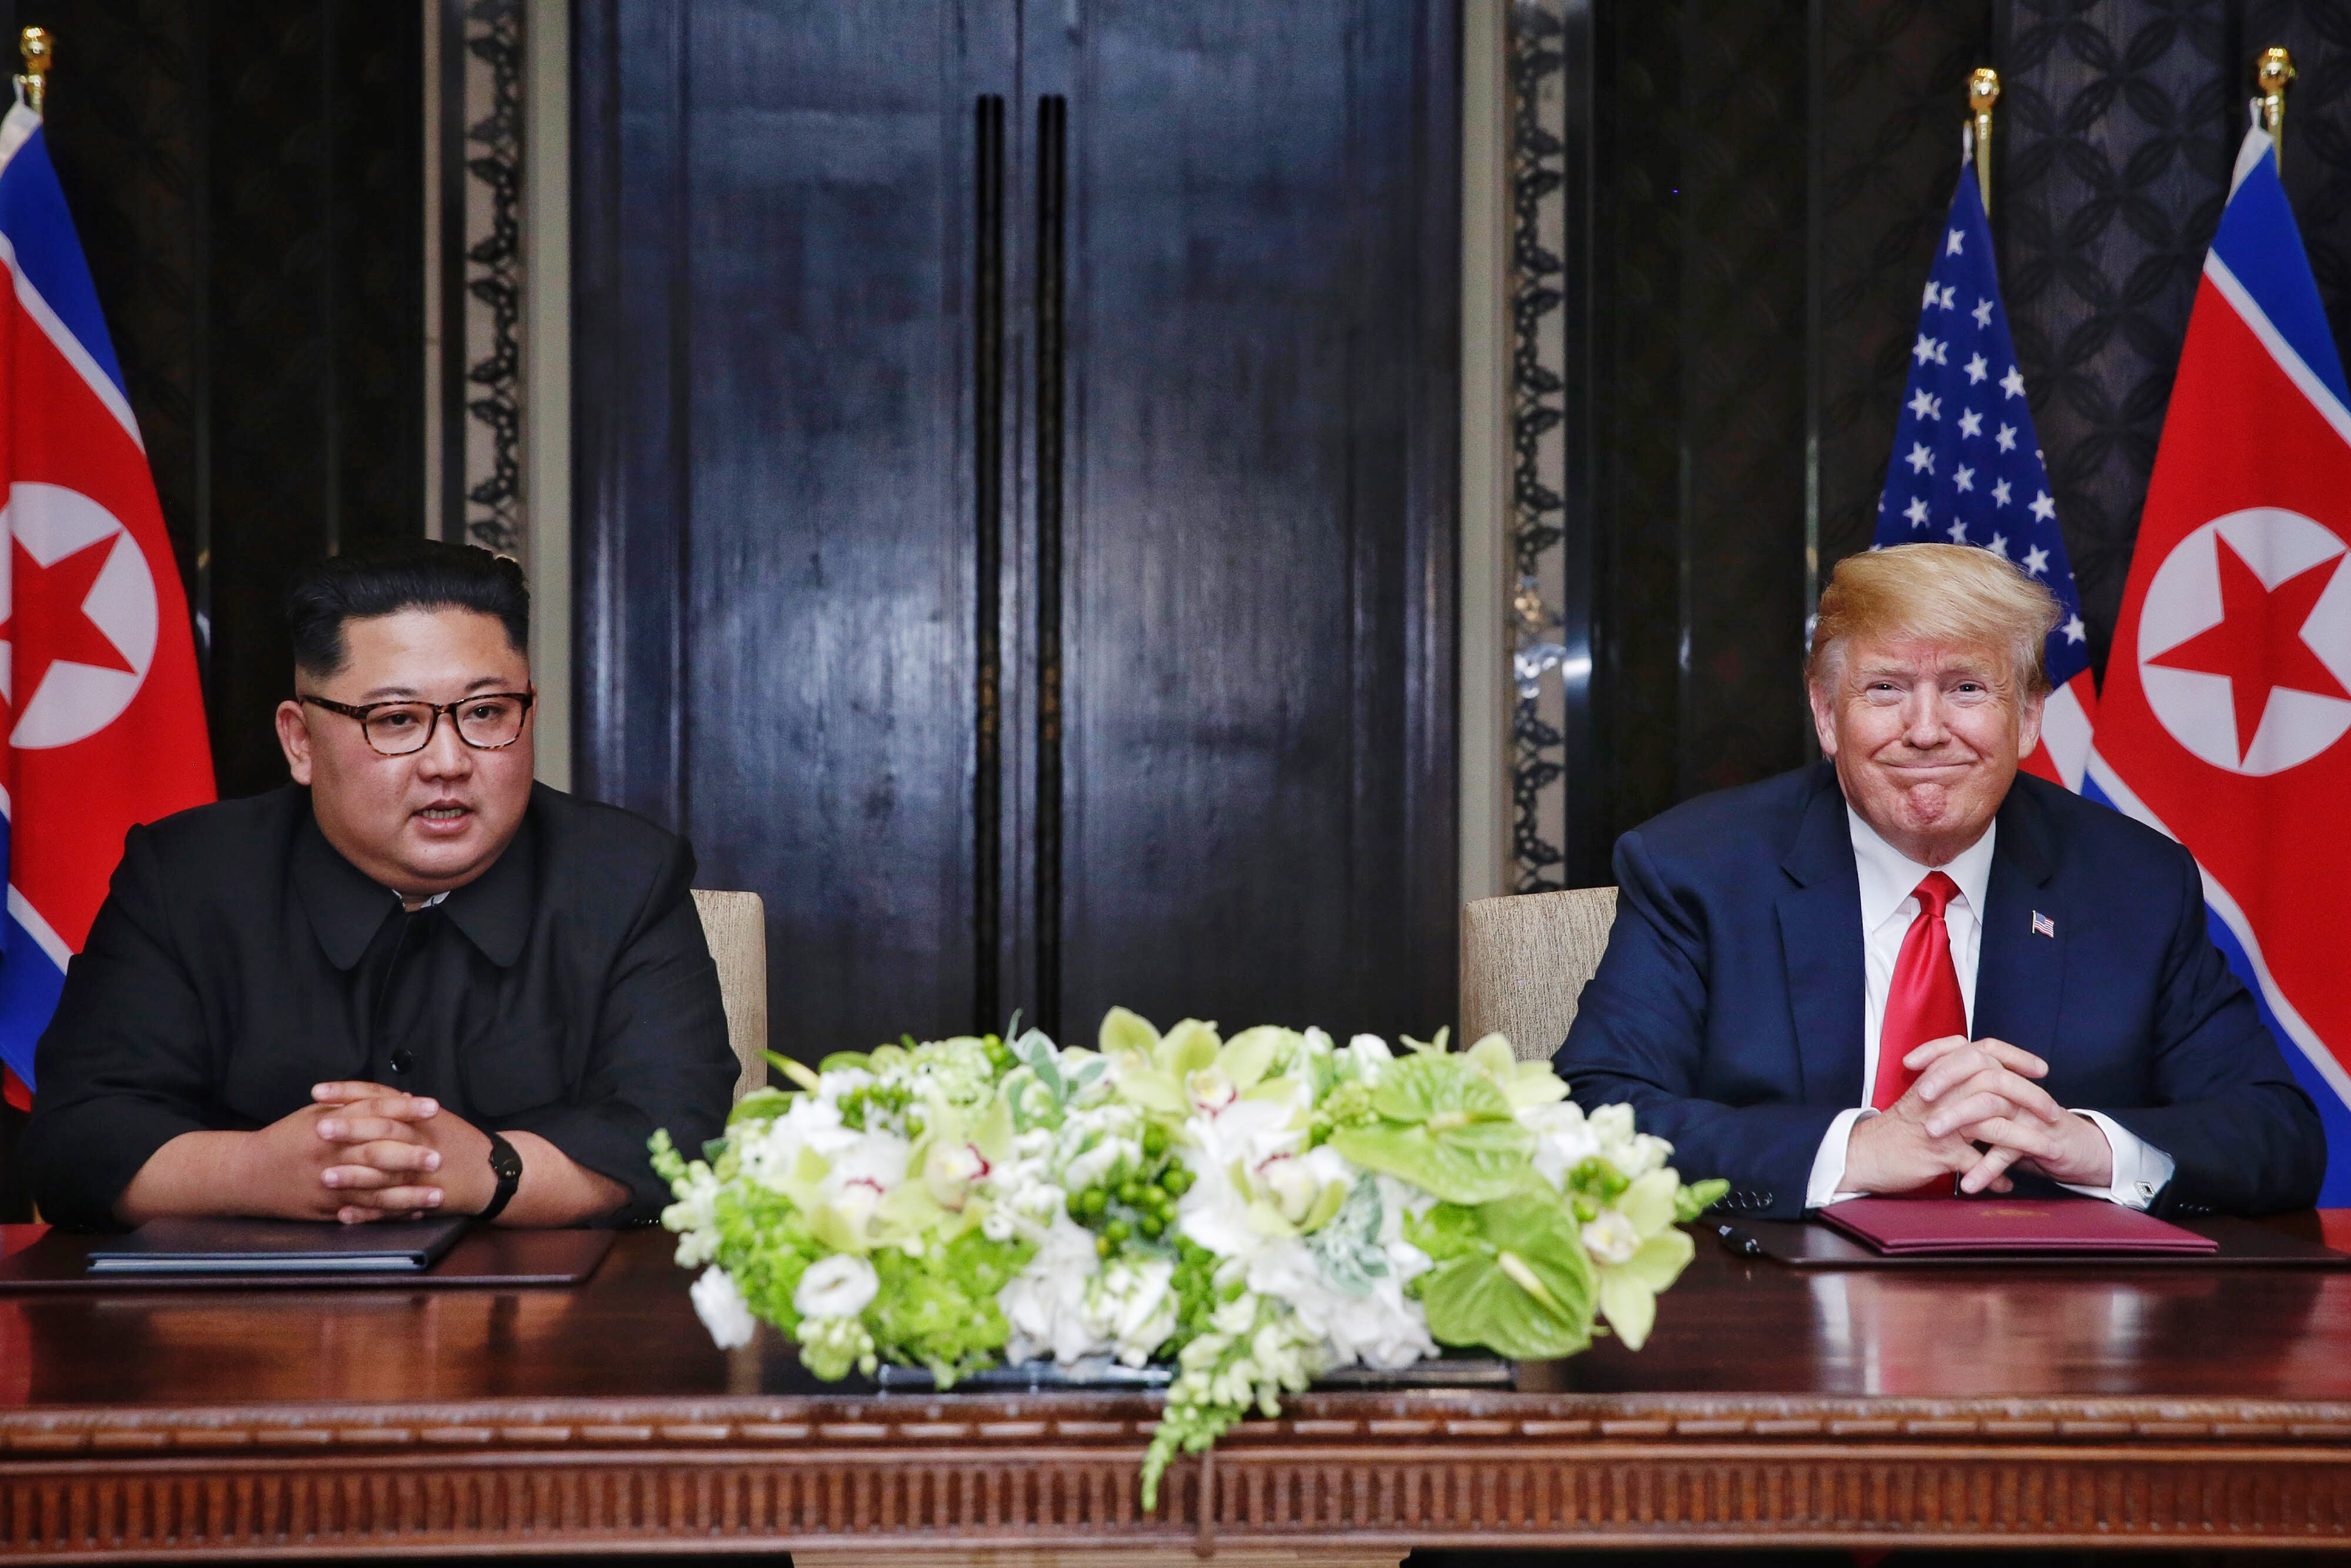 In this handout photograph provided by The Strait Times,, North Korean leader Kim Jong-un (L) with U.S. President Donald Trump (R) during their historic U.S.-DPRK summit at the Capella Hotel on Sentosa island on June 12, 2018 in Singapore. U.S. President Trump and North Korean leader Kim Jong-un held the historic meeting between leaders of both countries on Tuesday morning in Singapore, carrying hopes to end decades of hostility and the threat of North Korea's nuclear programme.